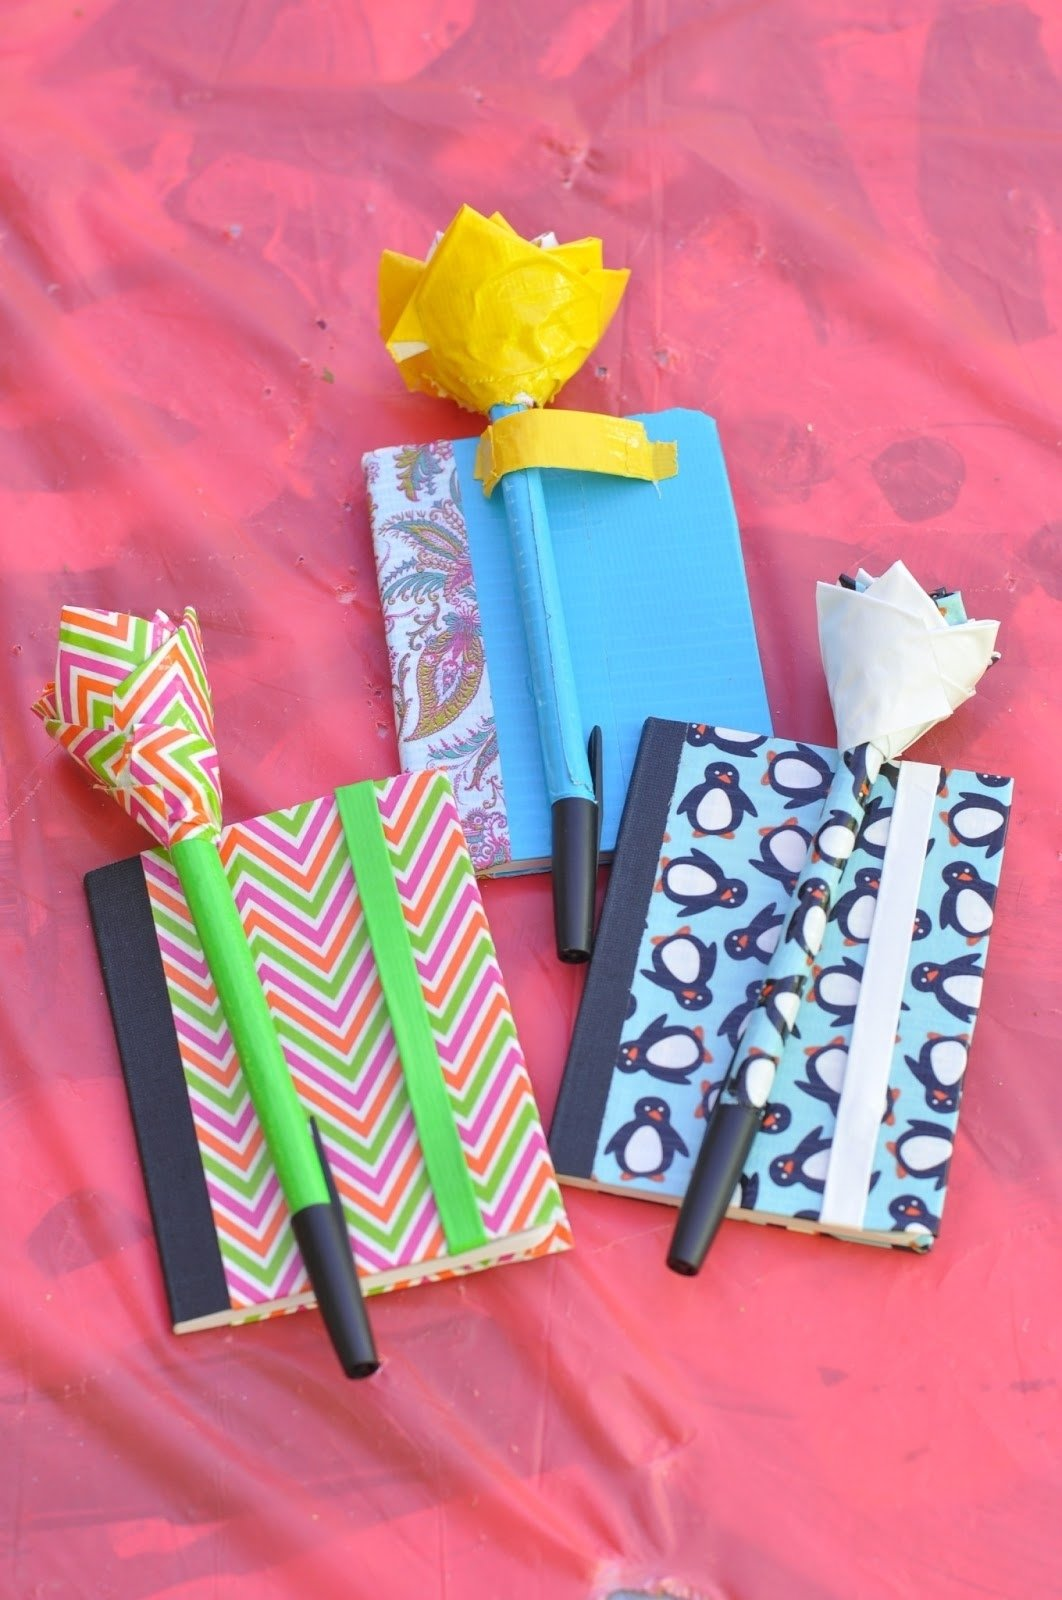 10 Attractive Duct Tape Ideas For Girls duct tape crafts for teenage girls ye craft ideas 1 2020